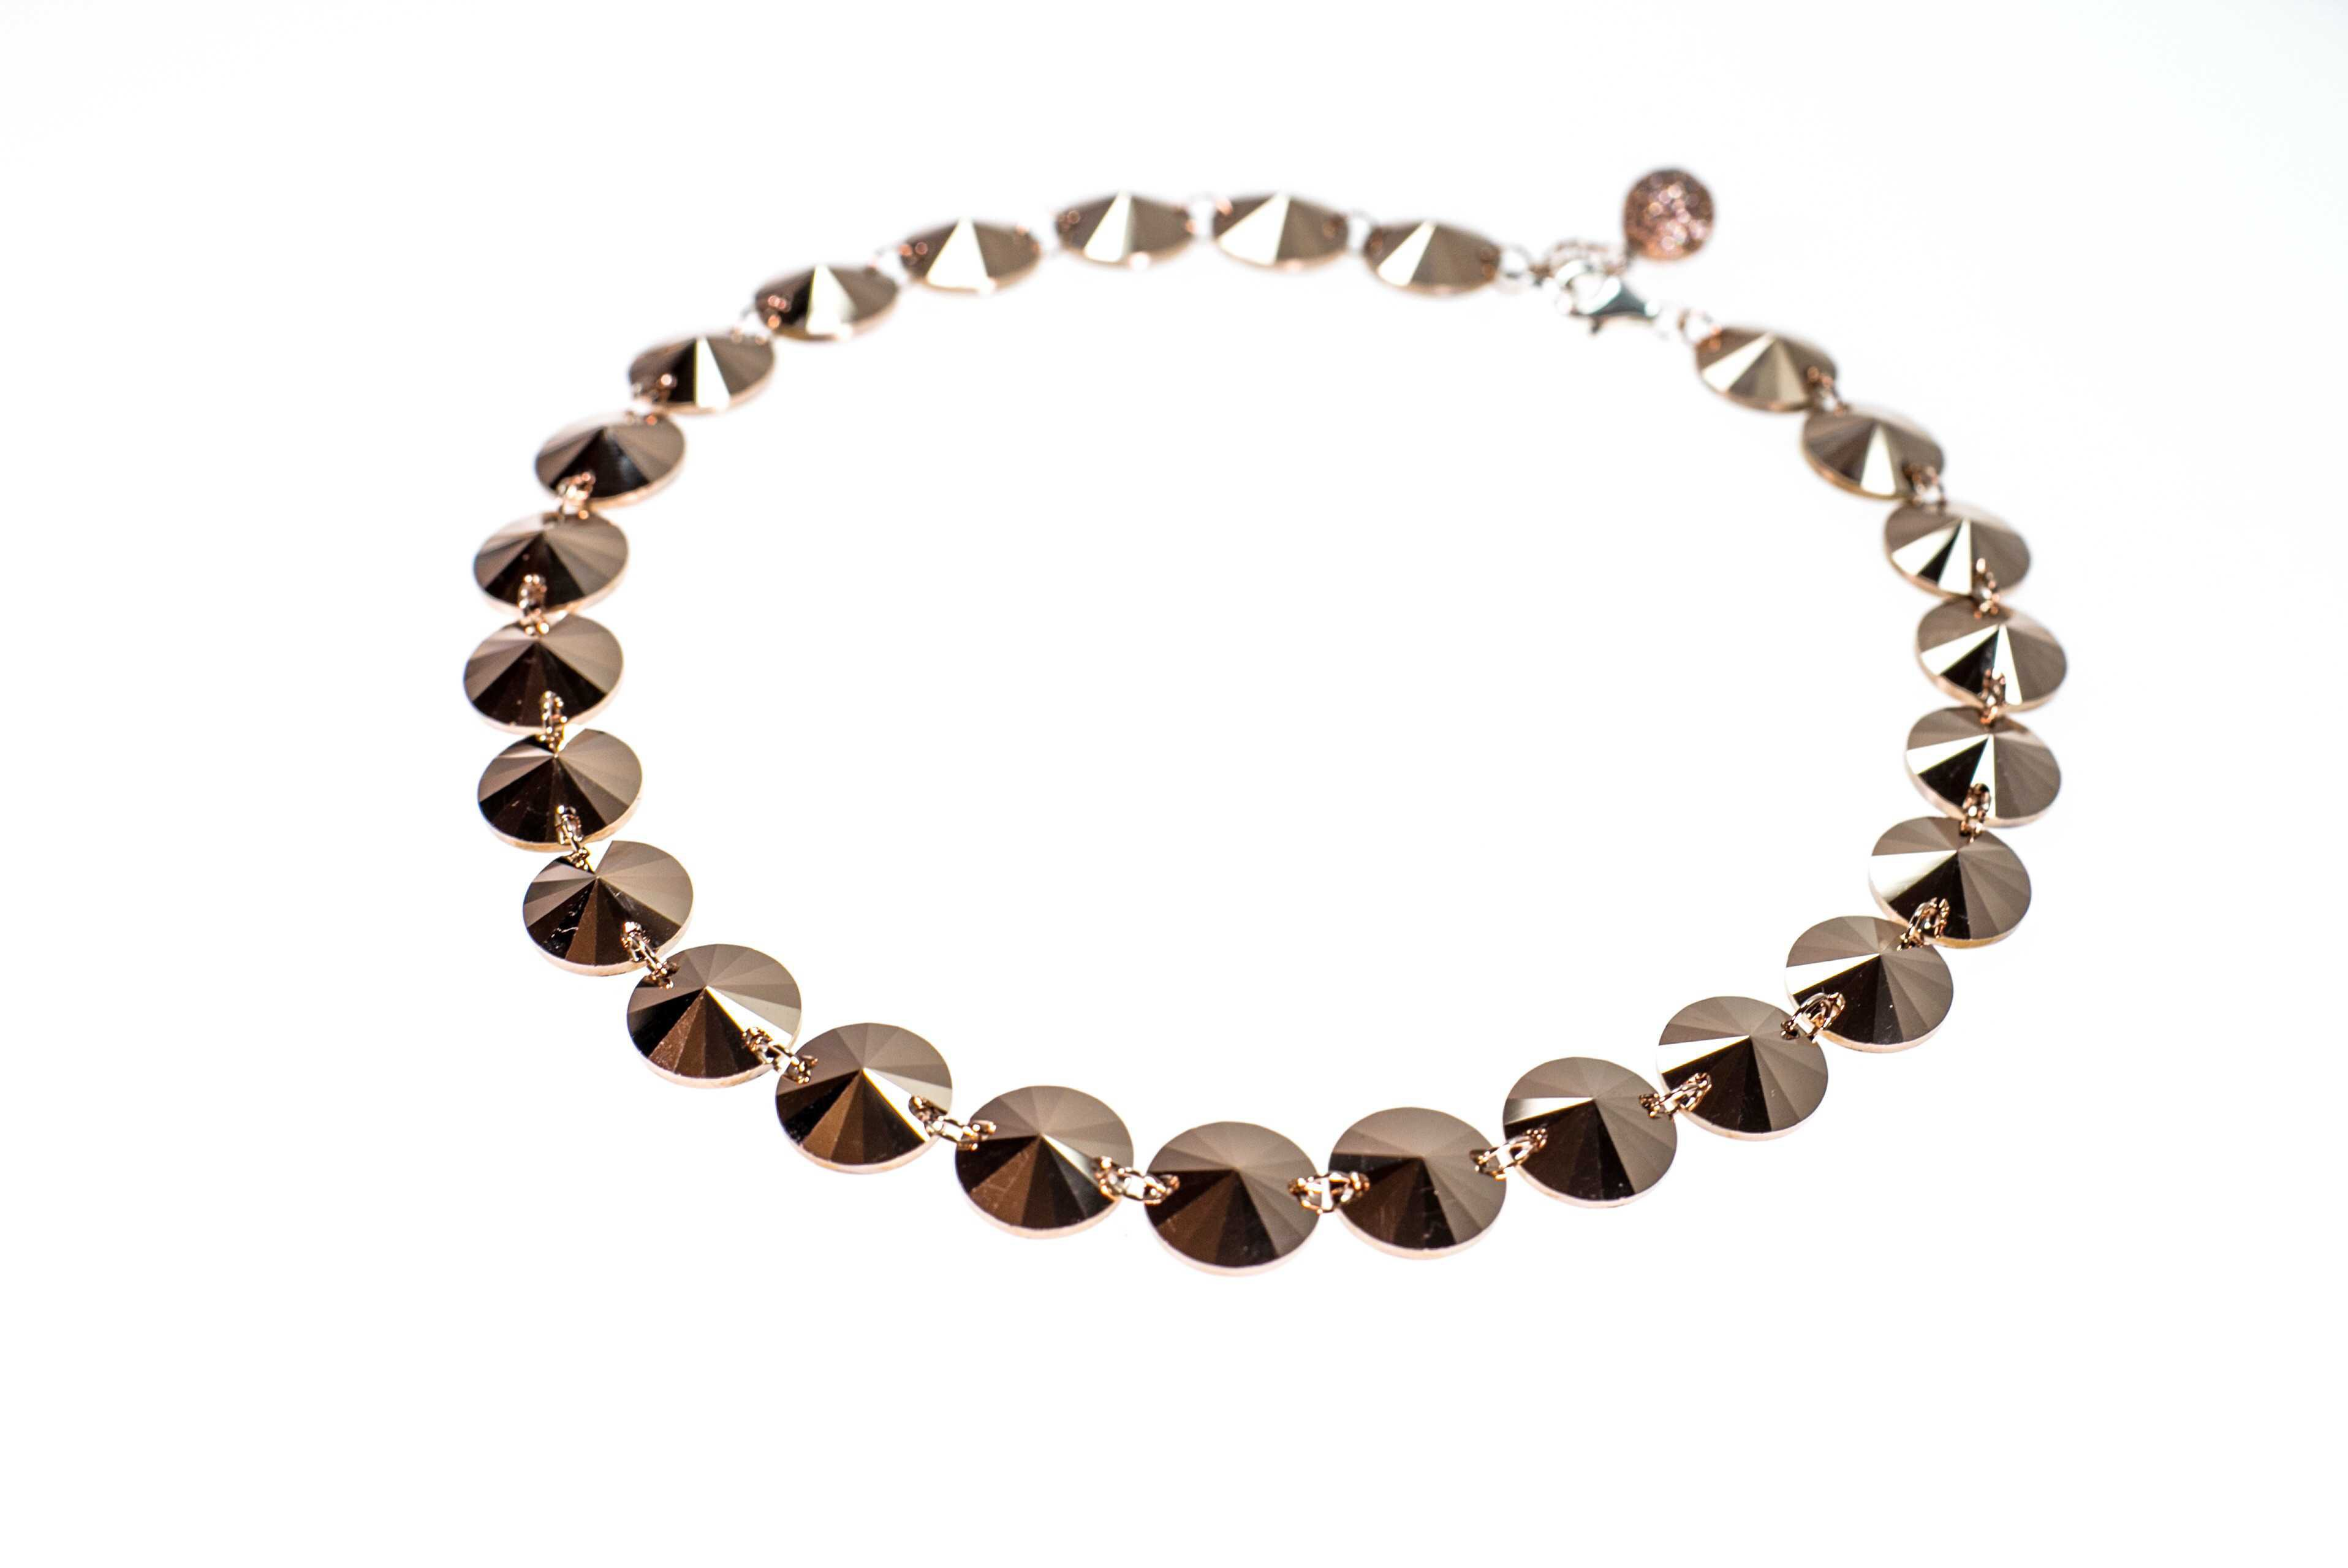 Andrea Winter jewelry necklace